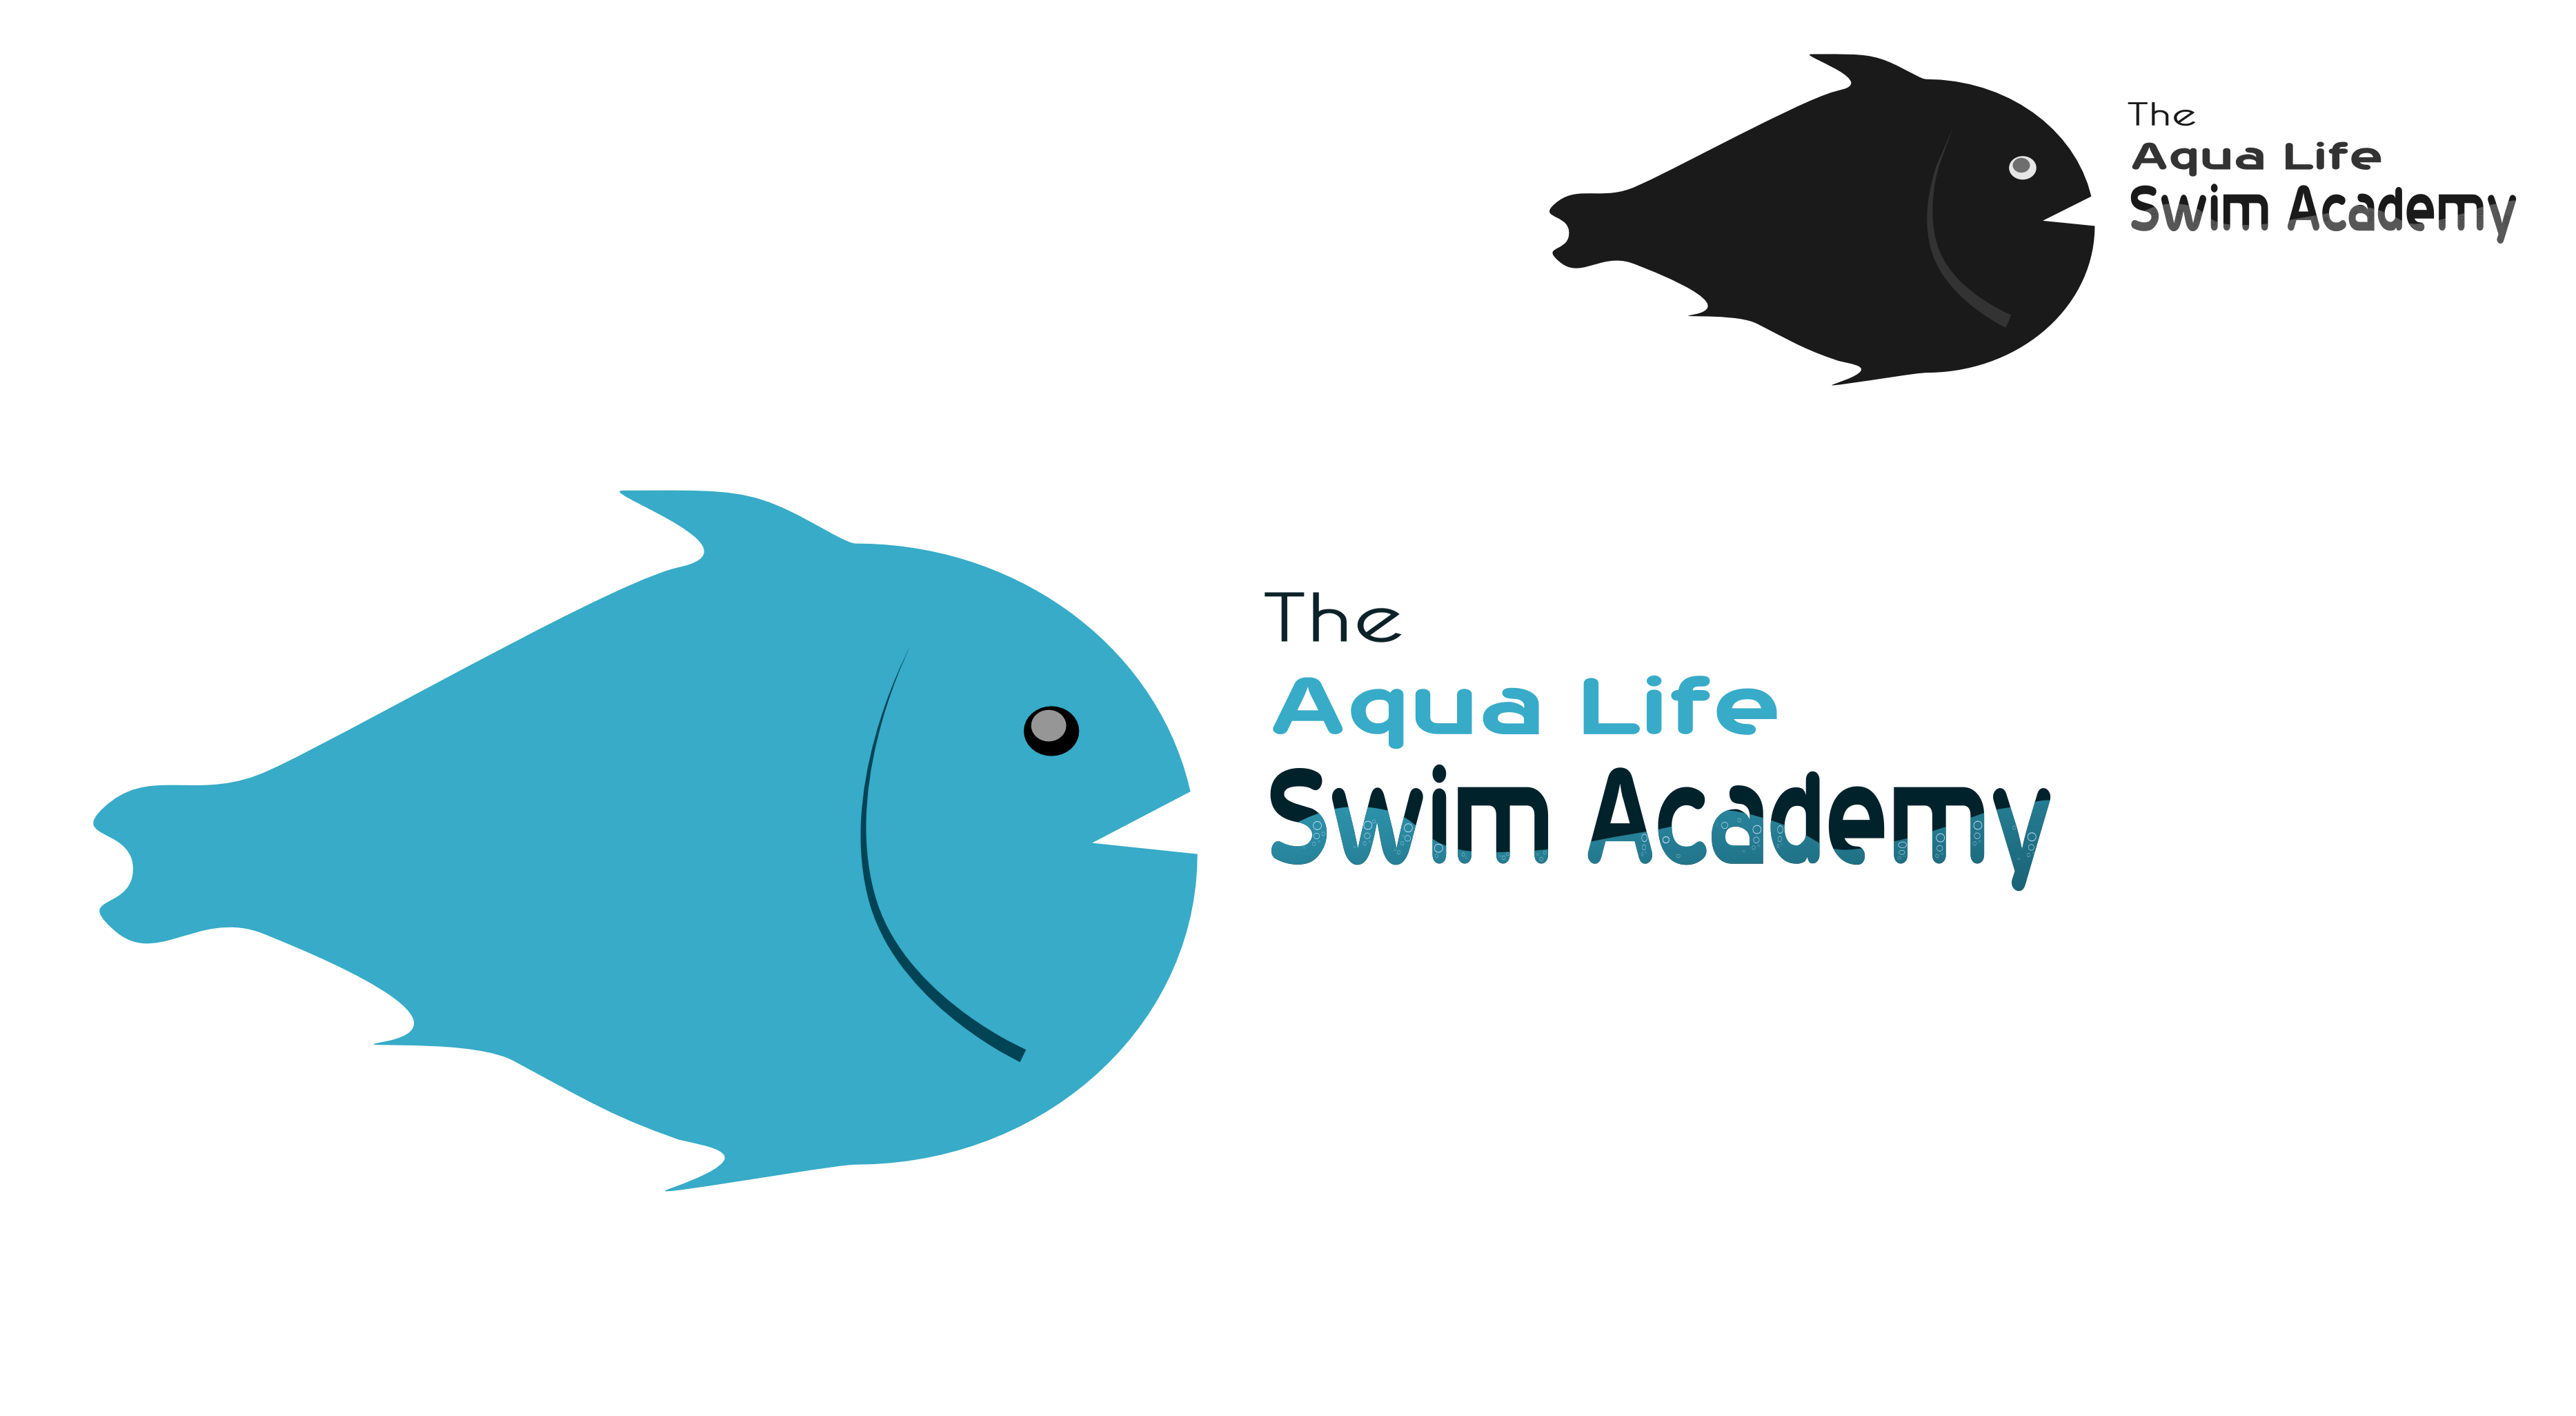 Logo Design by Arindam Khanda - Entry No. 73 in the Logo Design Contest Artistic Logo Design Wanted for The Aqua Life Swim Academy.